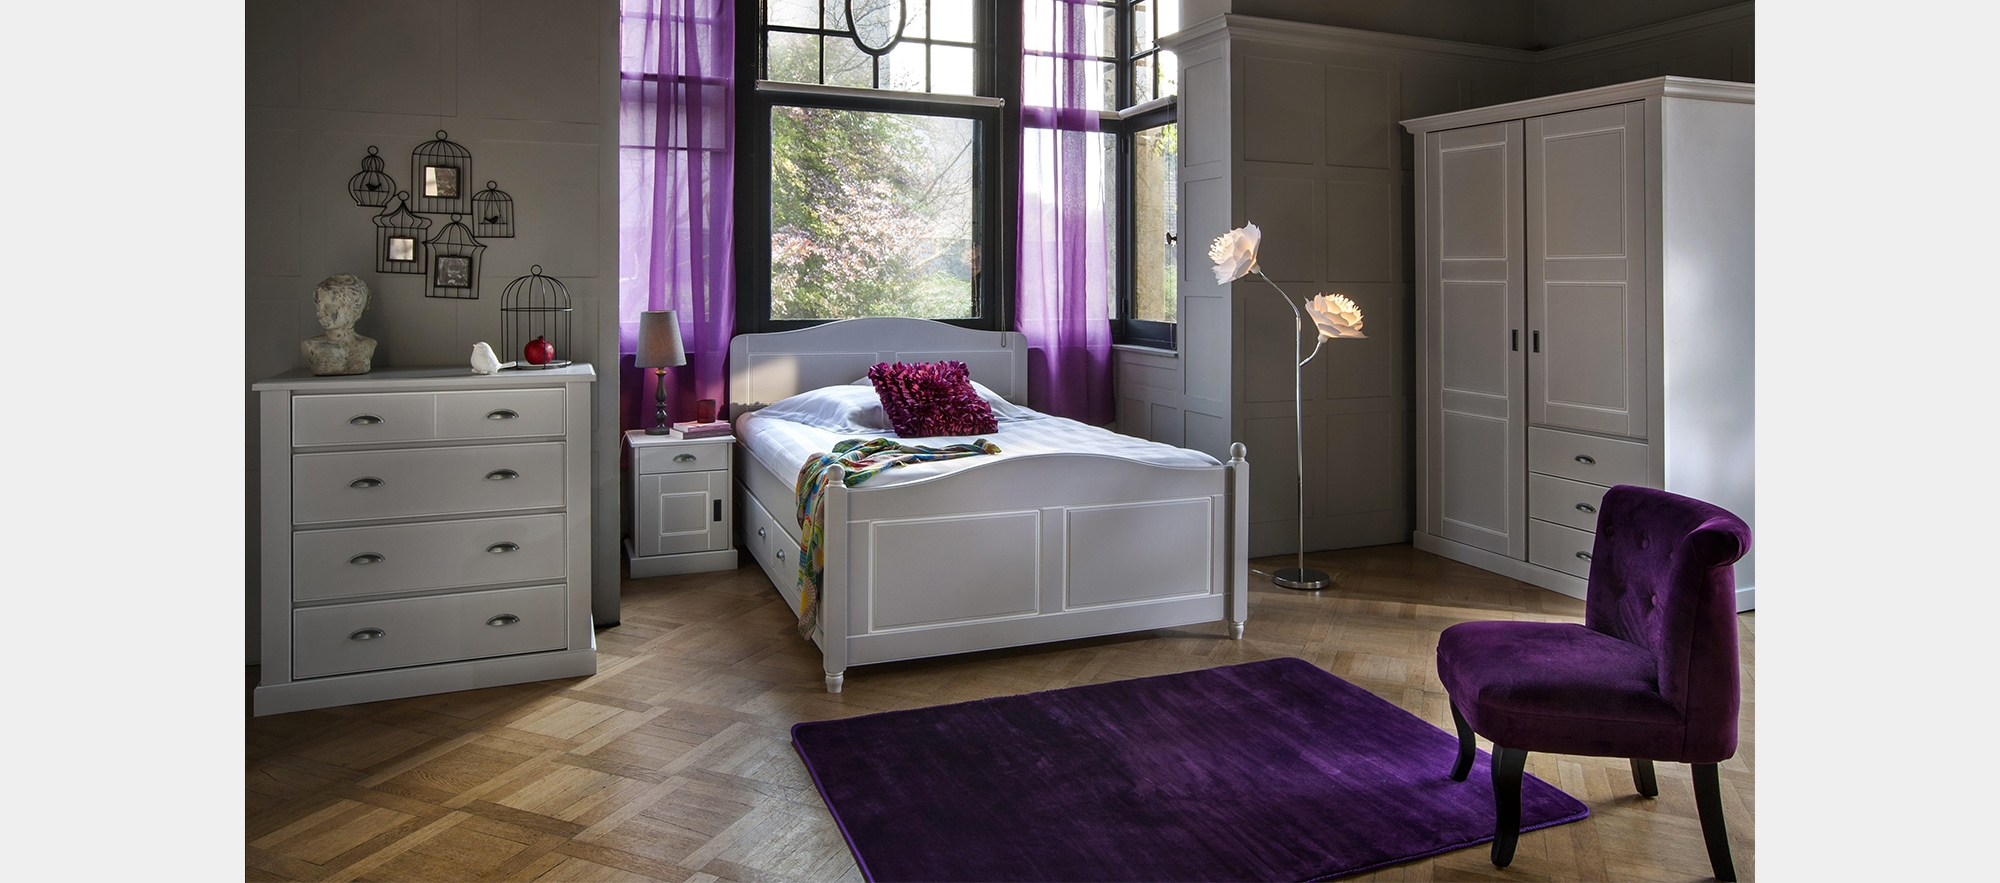 Emejing meuble chambre but pictures awesome interior for Meubles chambre a coucher adulte